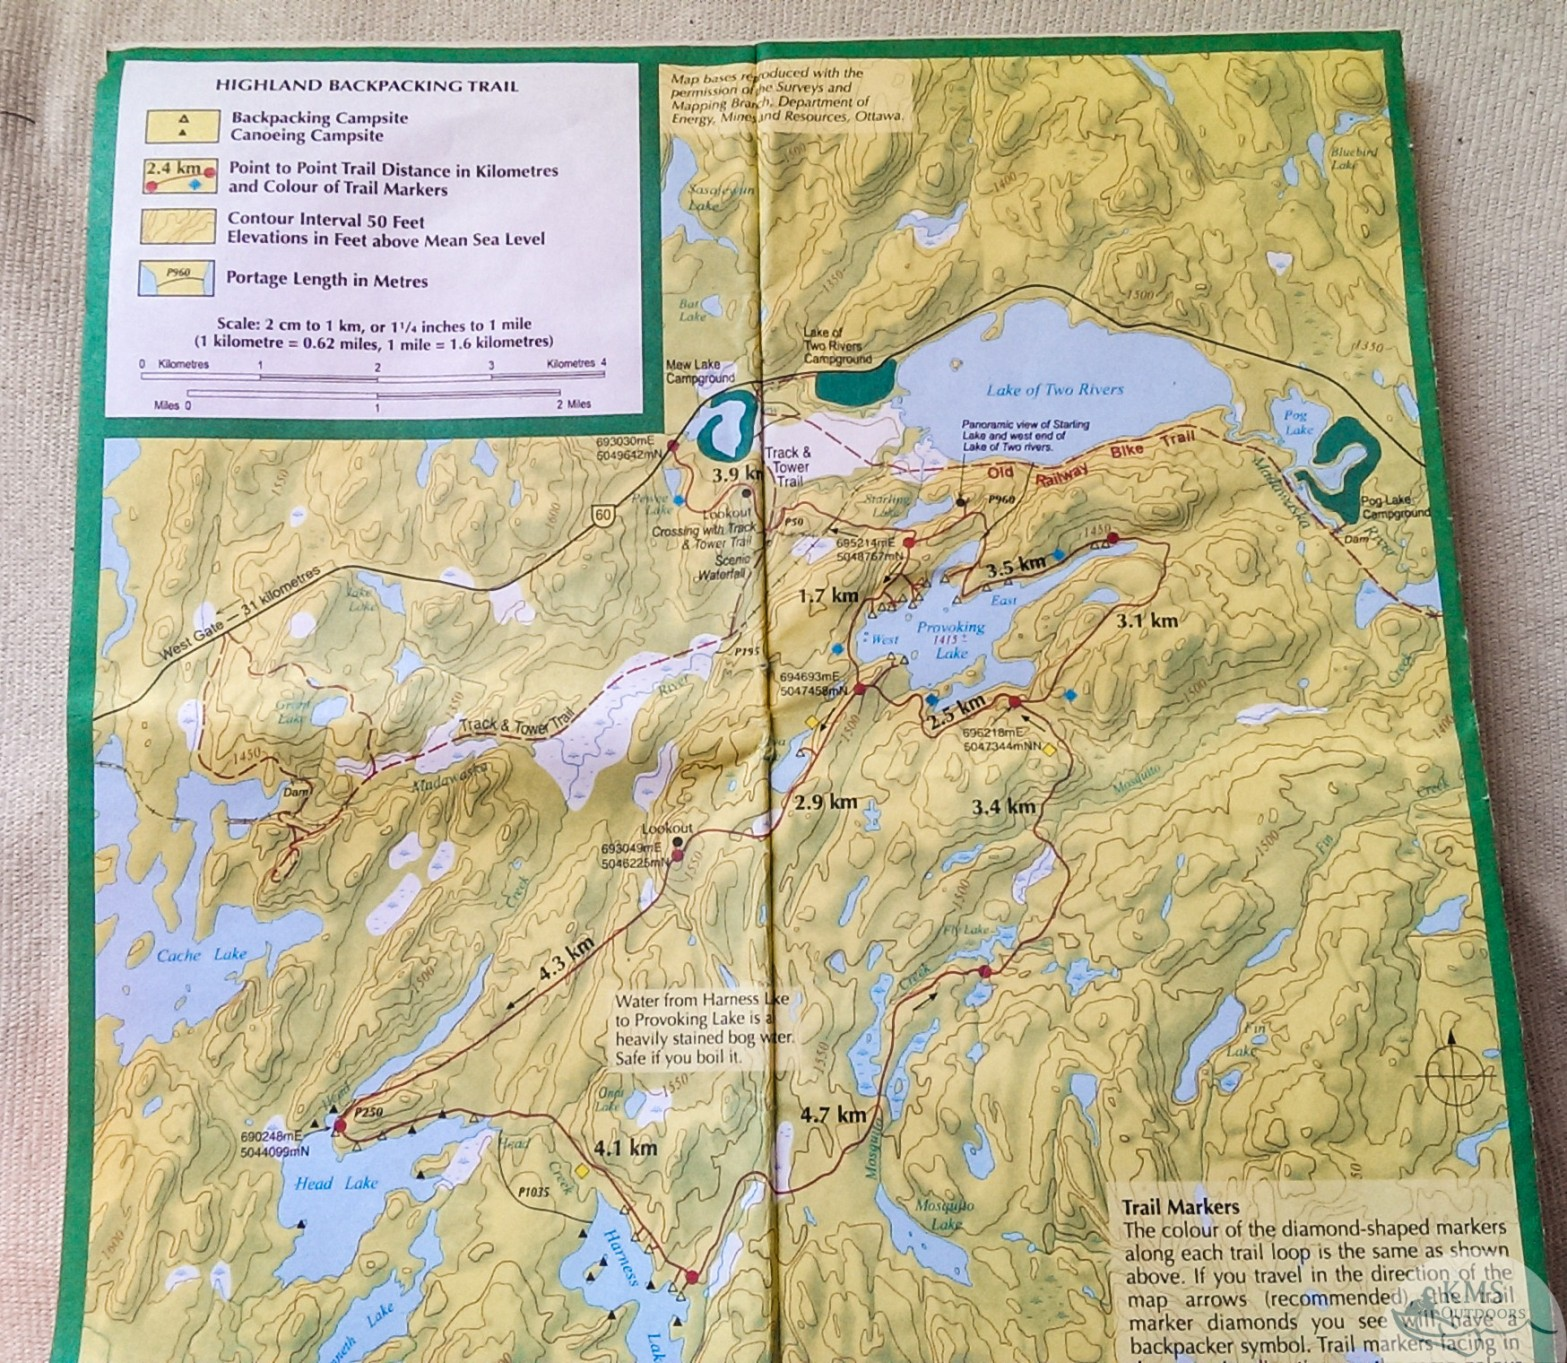 Highland Backpacking Trail map available for purchase at Algonquin Park